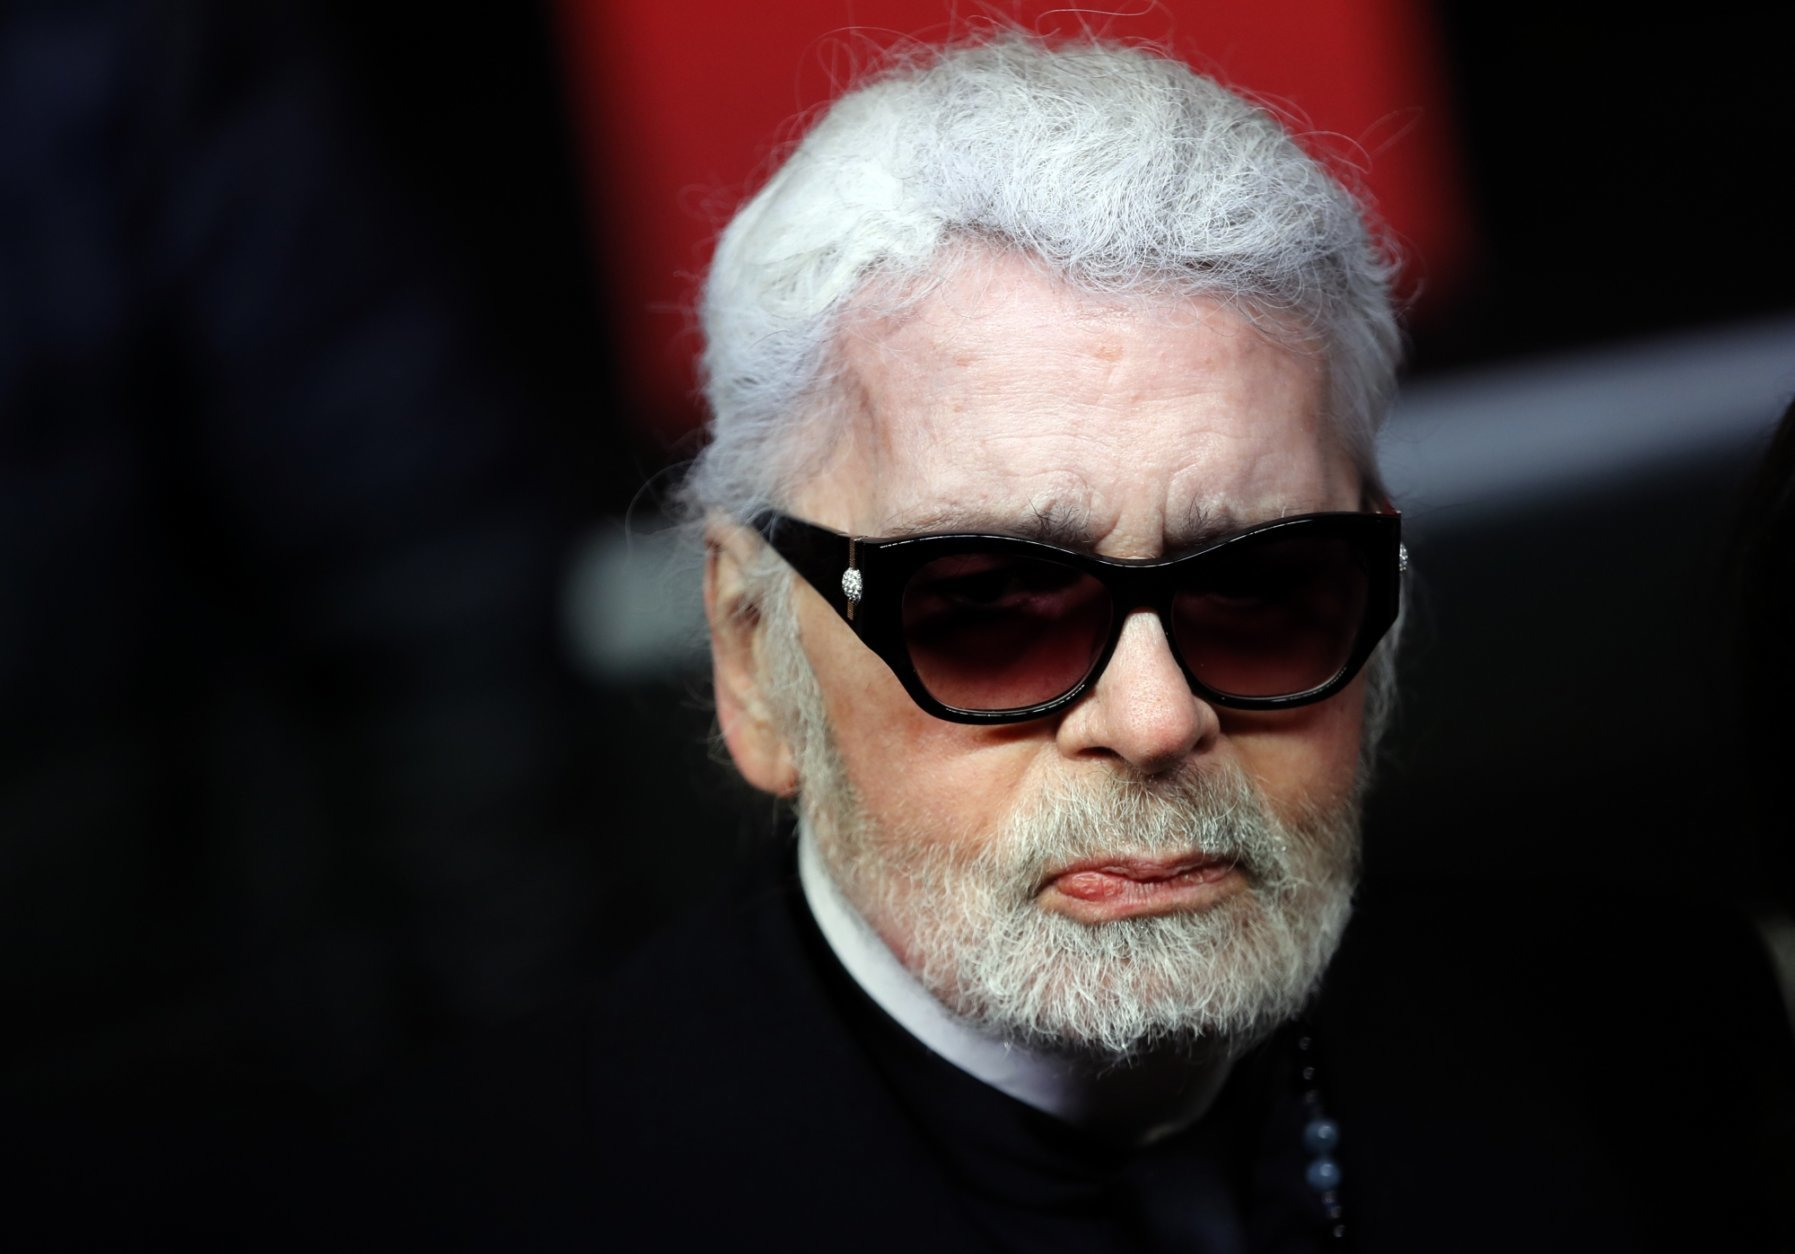 FILE - In this Thursday, Nov. 22, 2018 file photo, Fashion designer Karl Lagerfeld poses during the Champs Elysee Avenue illumination ceremony for the Christmas season, in Paris. Chanel says Tuesday, Feb. 19, 2019 its iconic couturier Karl Lagerfeld has died. (AP Photo/Christophe Ena, File)